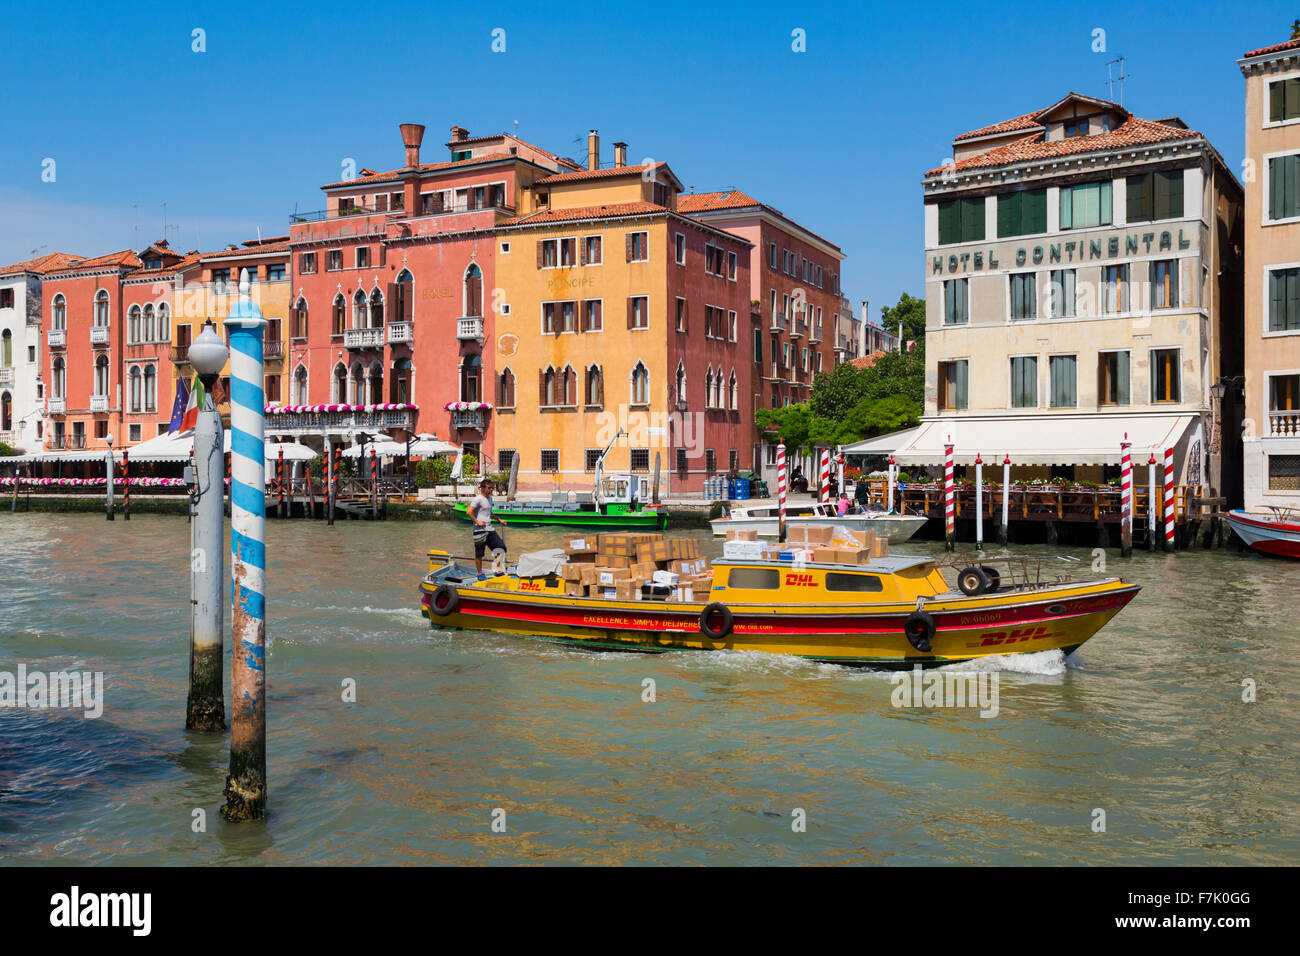 Venice, Italy.  A DHL courier boat, laden with packets for delivery, motors down the Grand Canal. - Stock Image